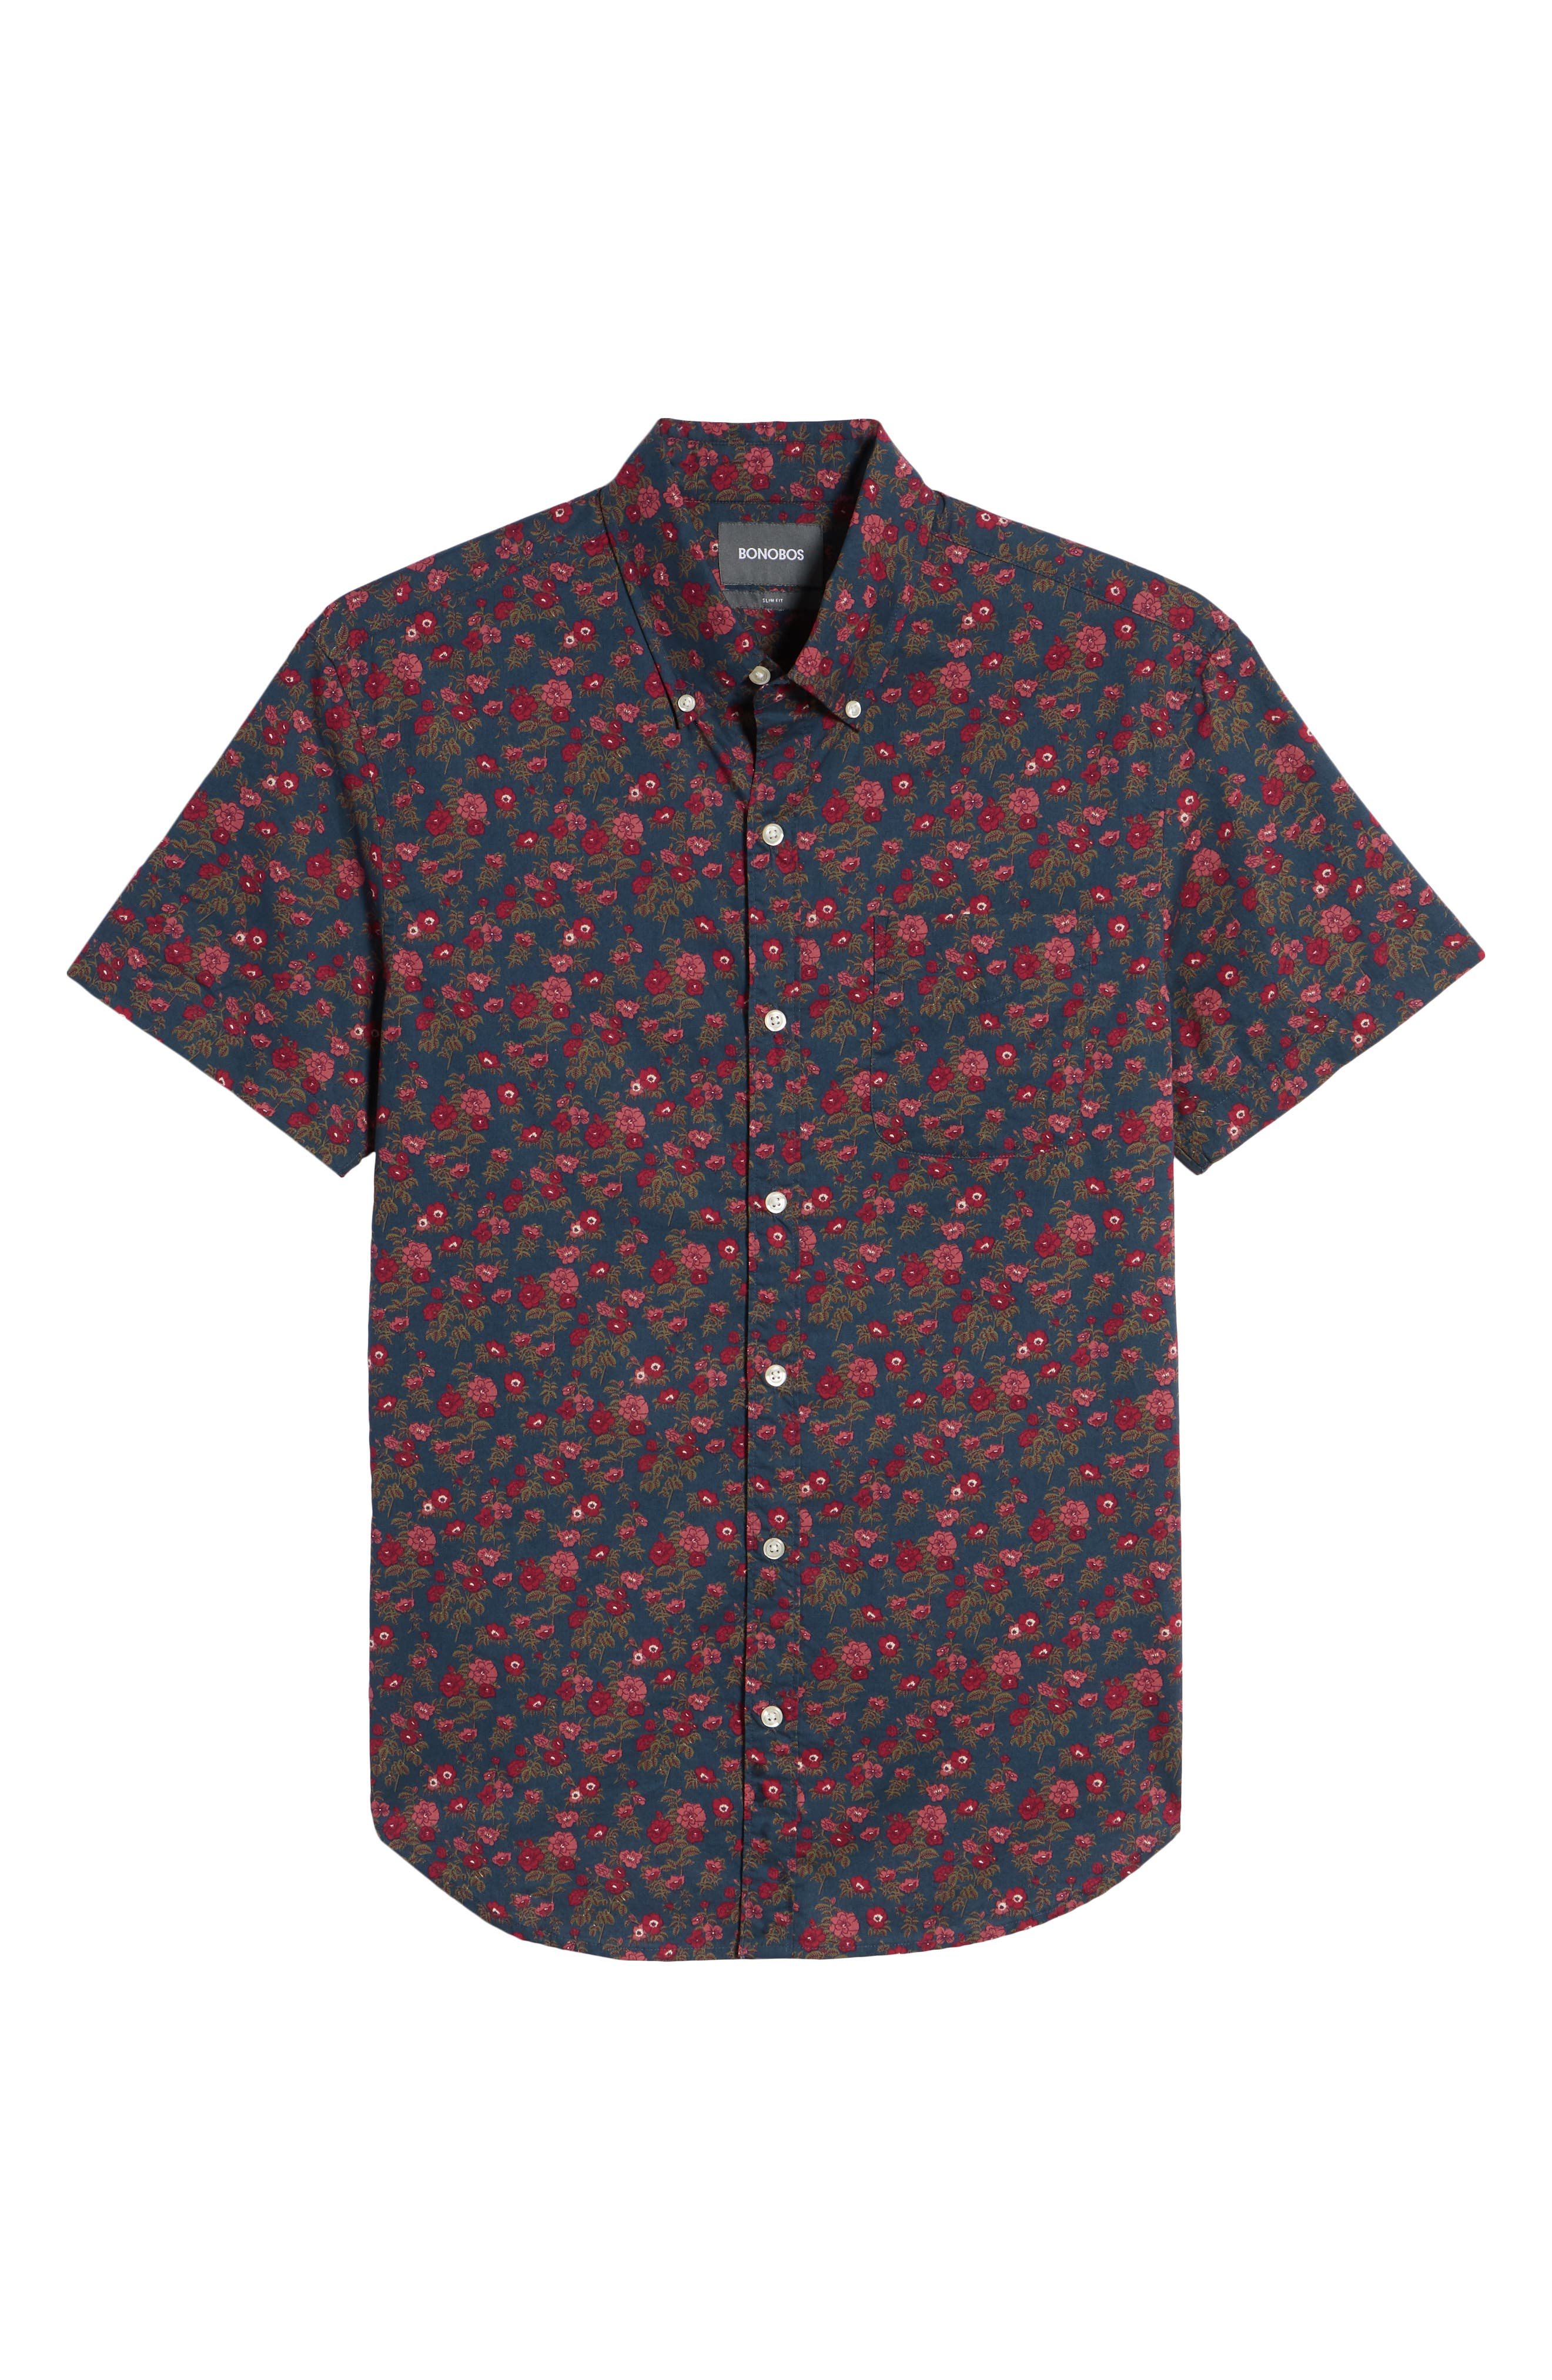 Riviera Slim Fit Floral Print Sport Shirt,                             Alternate thumbnail 6, color,                             400